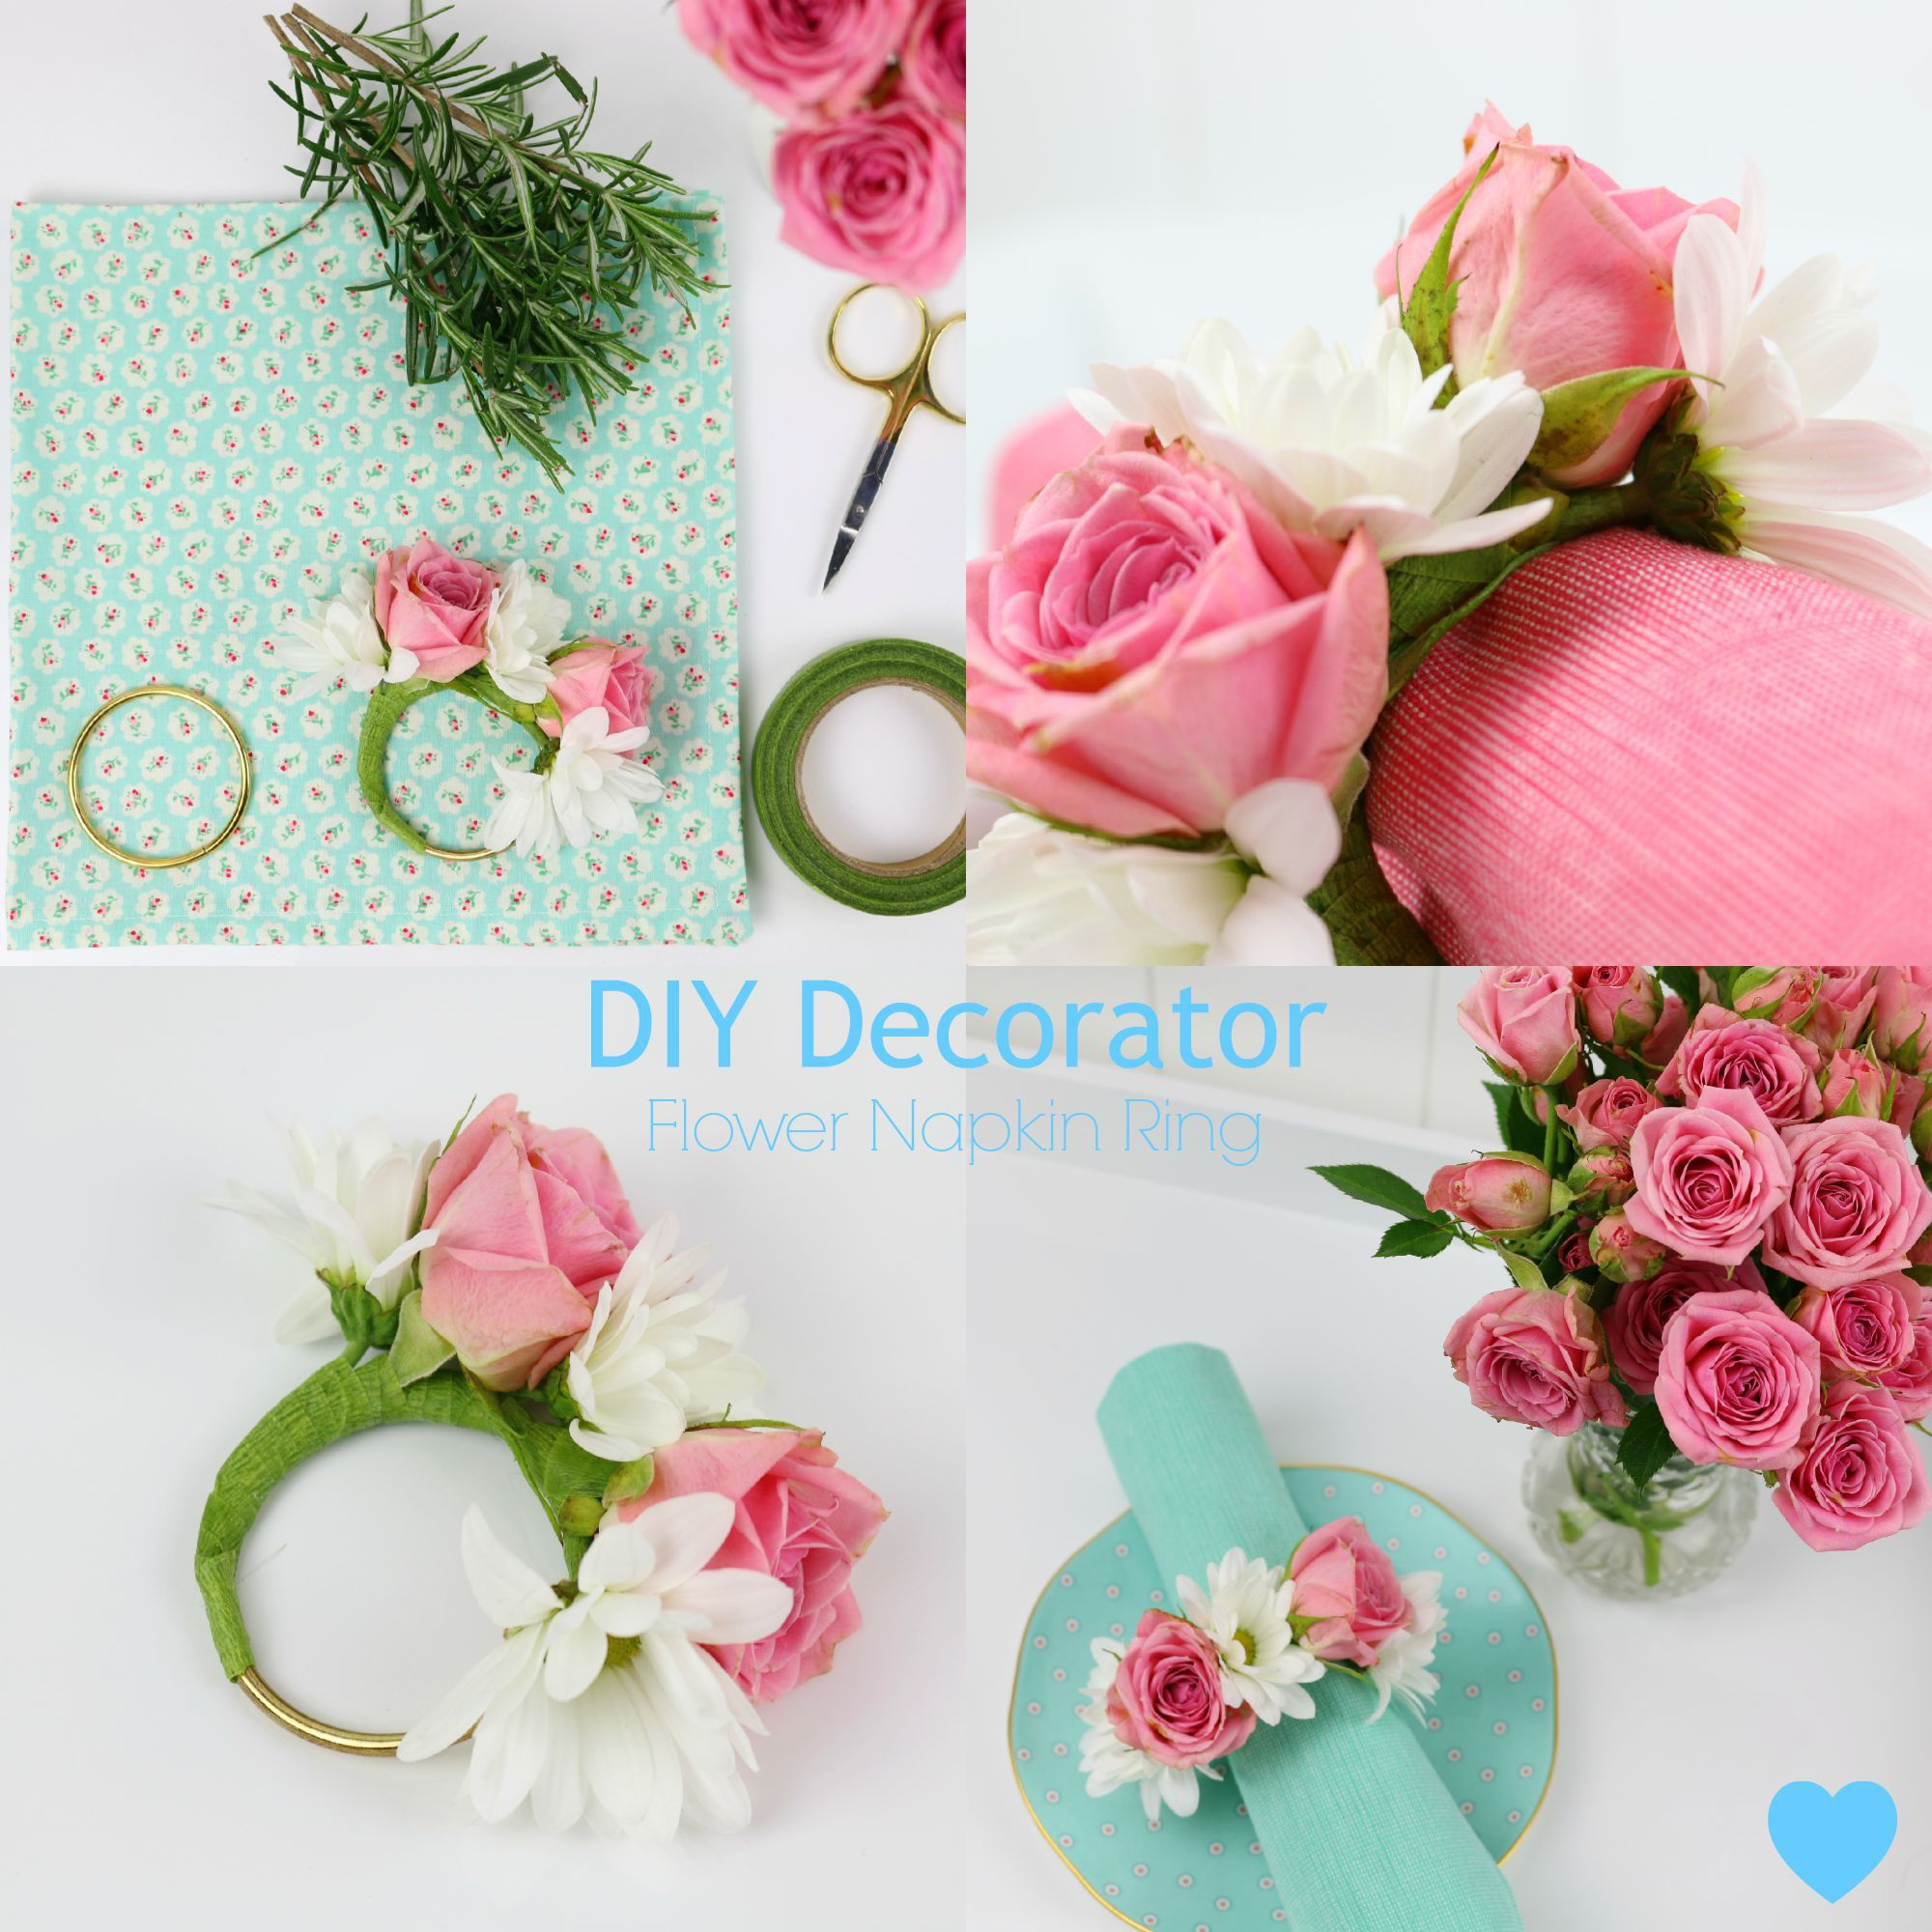 Diy Flower Napkin Rings Pinterest Napkins Napkin Rings And